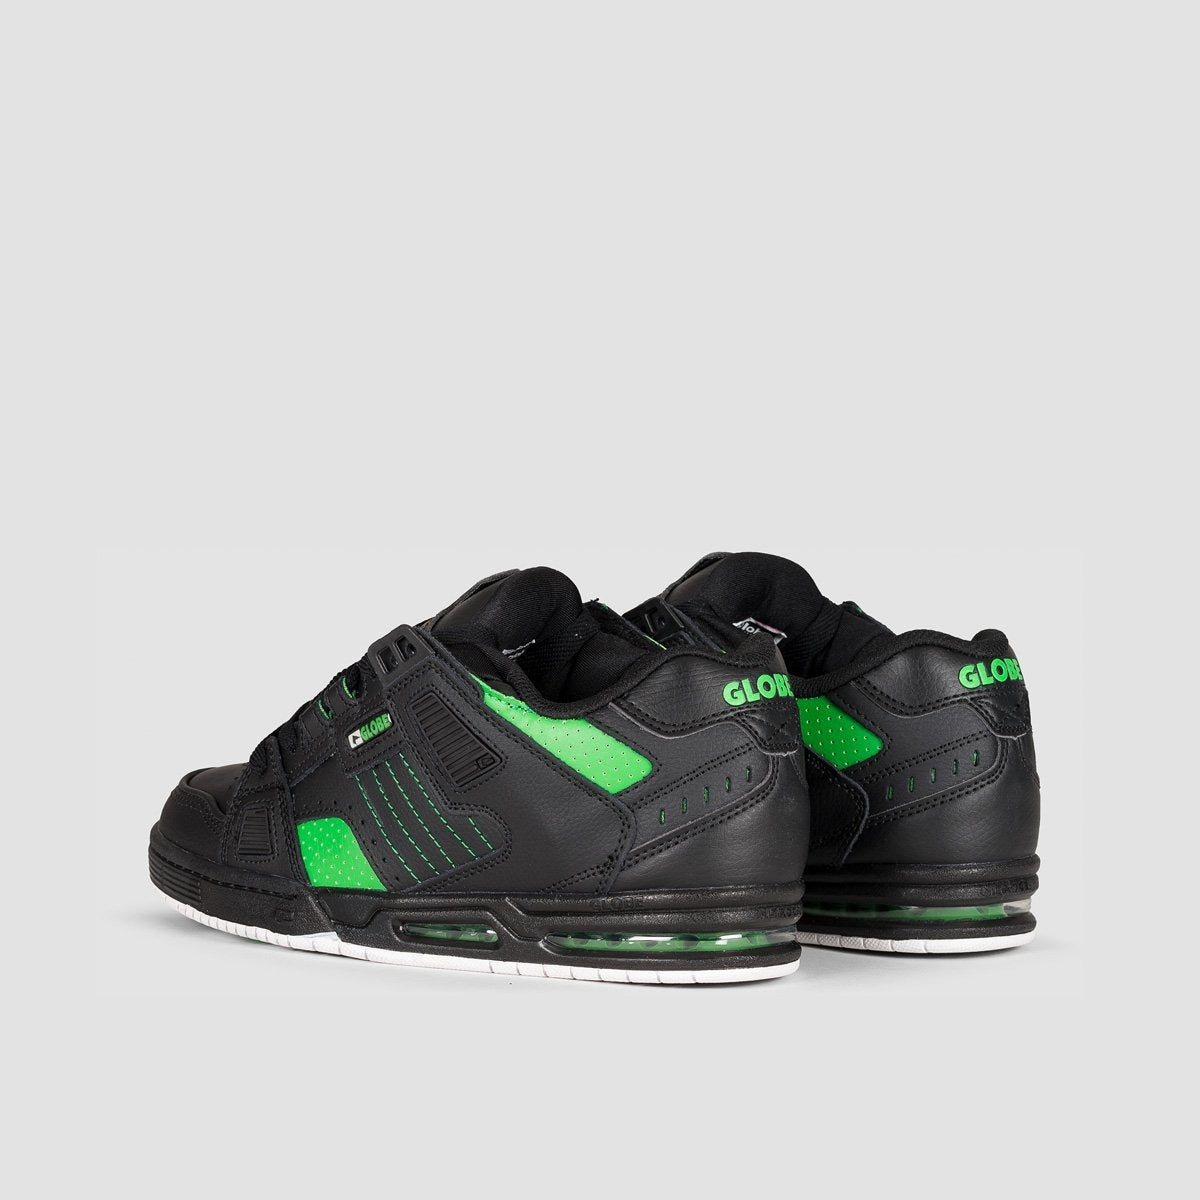 Globe Sabre Black/Moto Green - Footwear